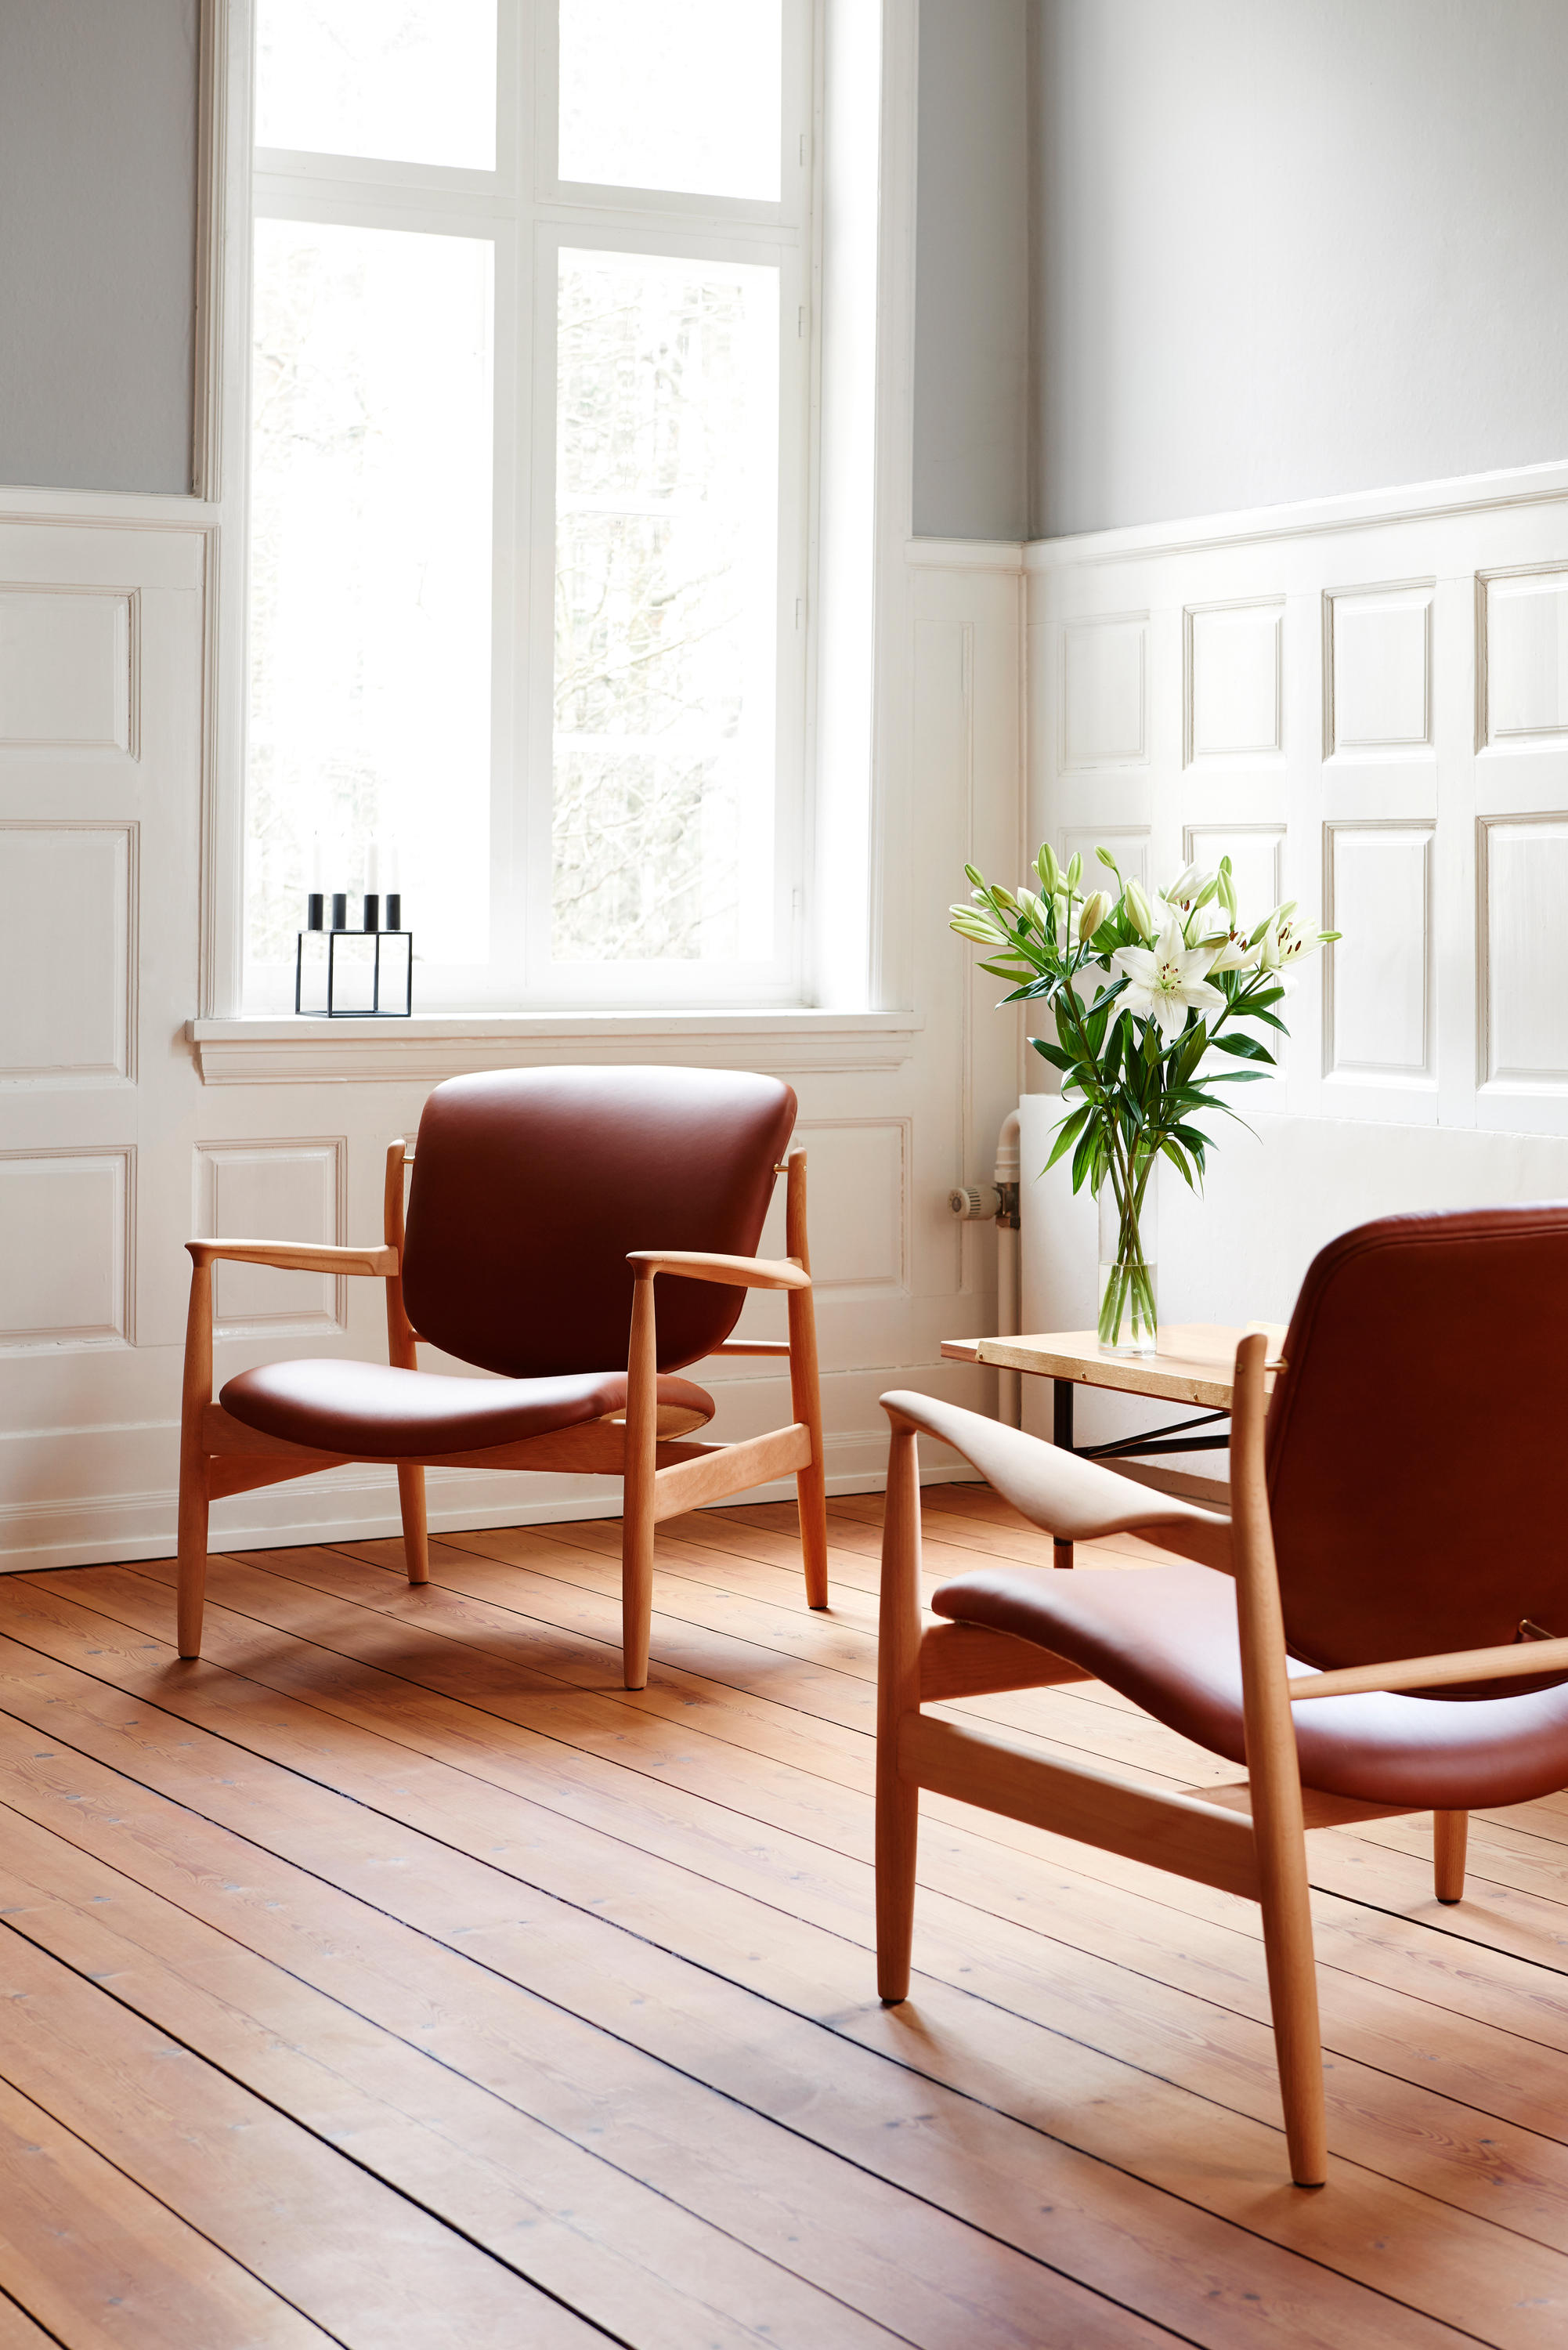 France chair lounge chairs from house of finn juhl for Danish design furniture replica uk